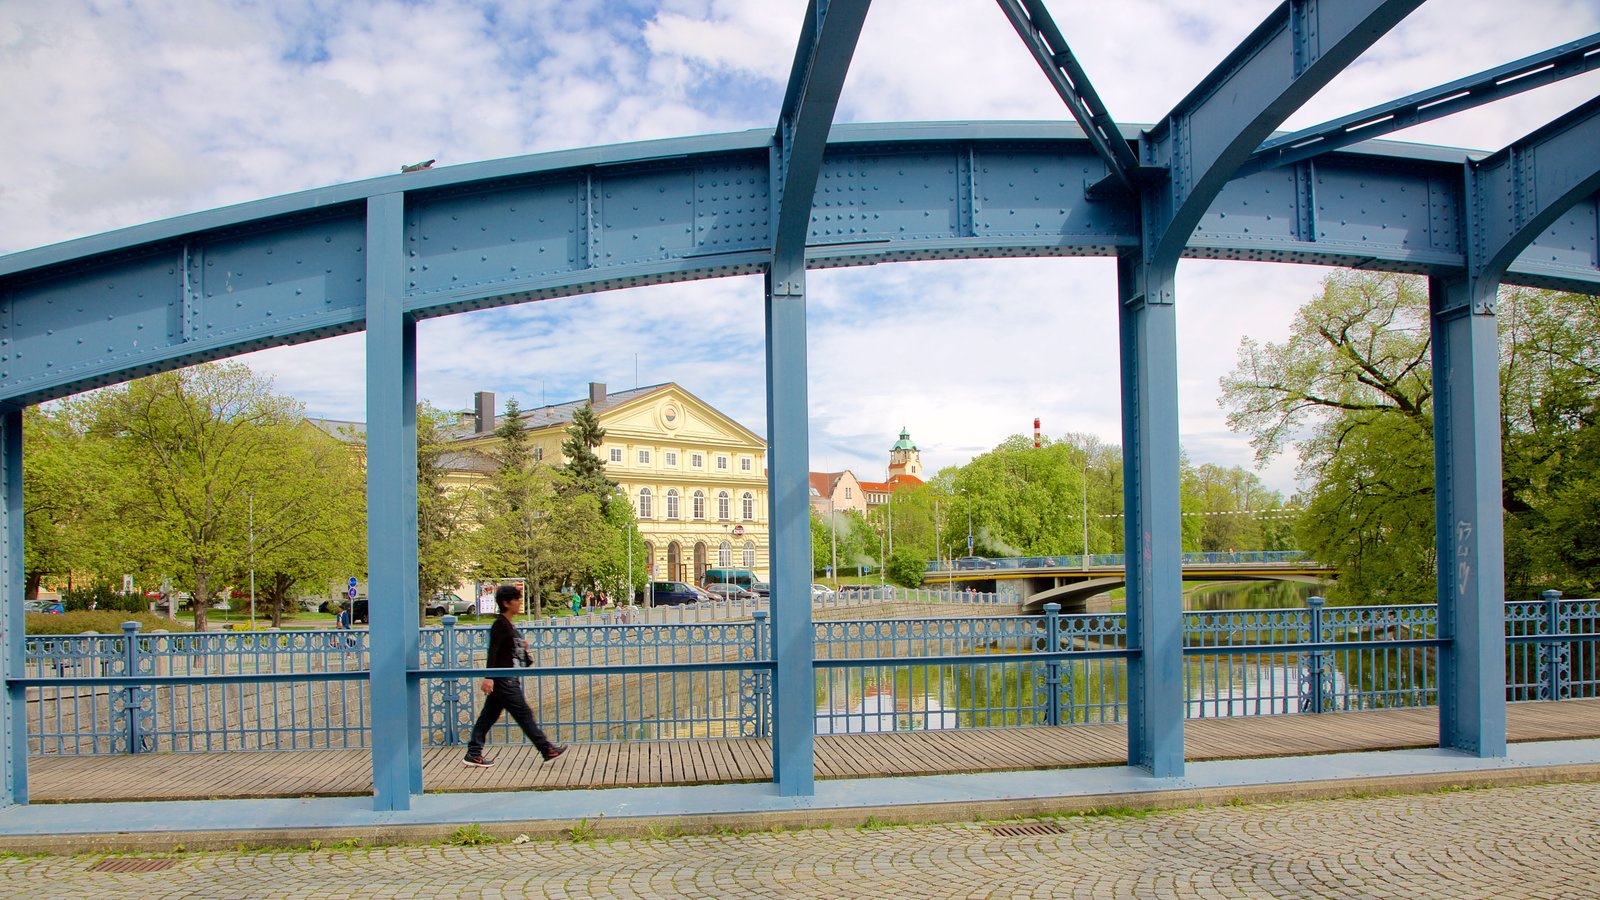 Ceske Budejovice showing a river or creek and a bridge as well as an individual femail